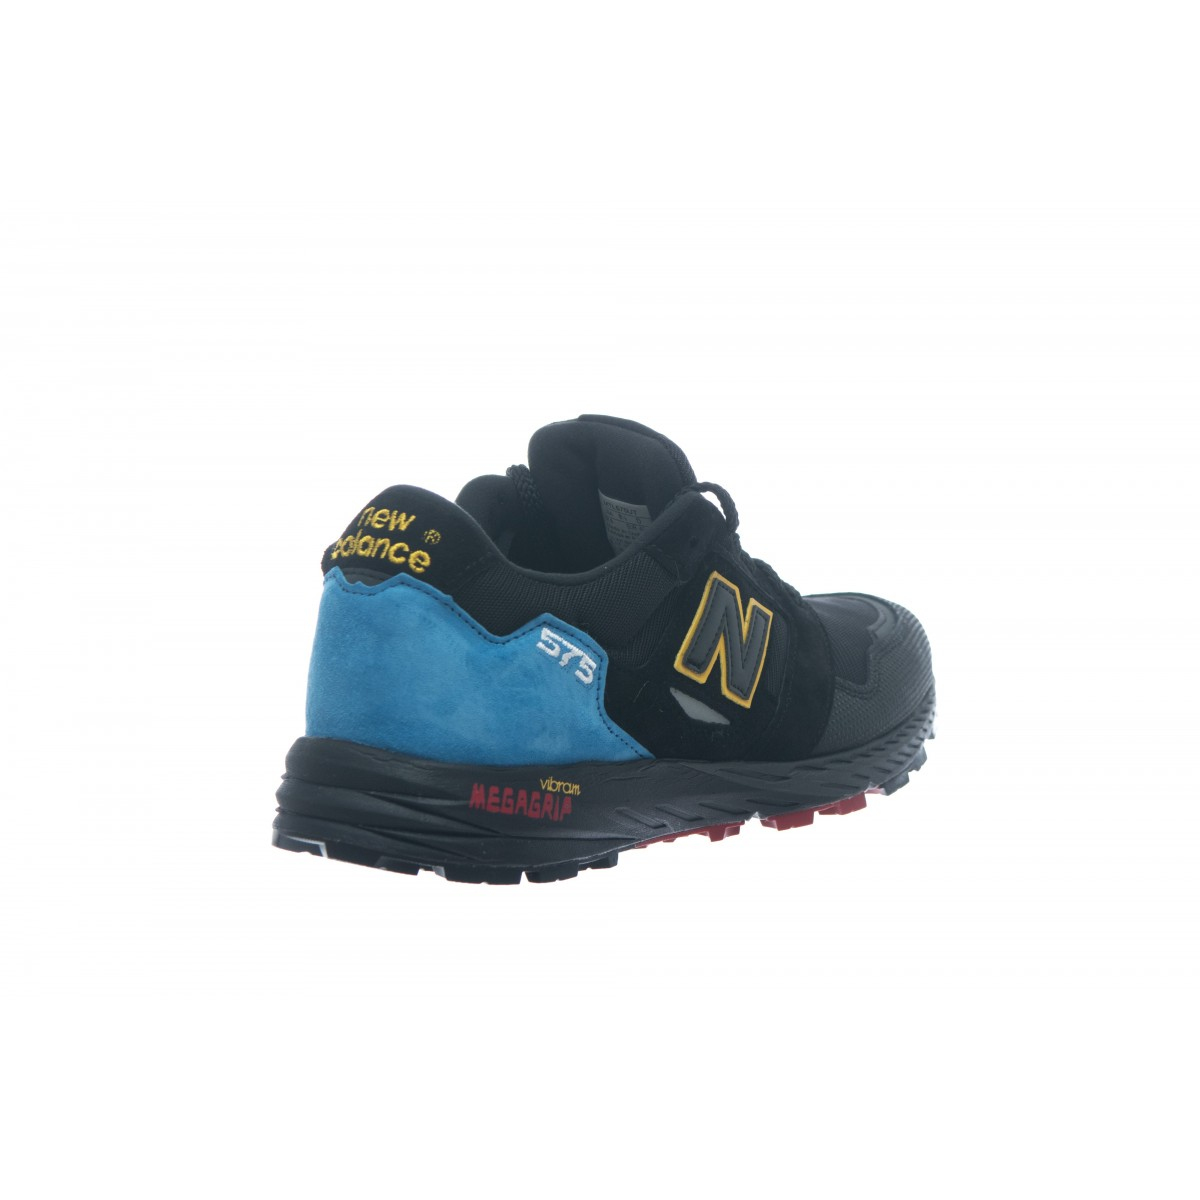 Scarpa - Mtl575 suola vibram mega grip made in uk